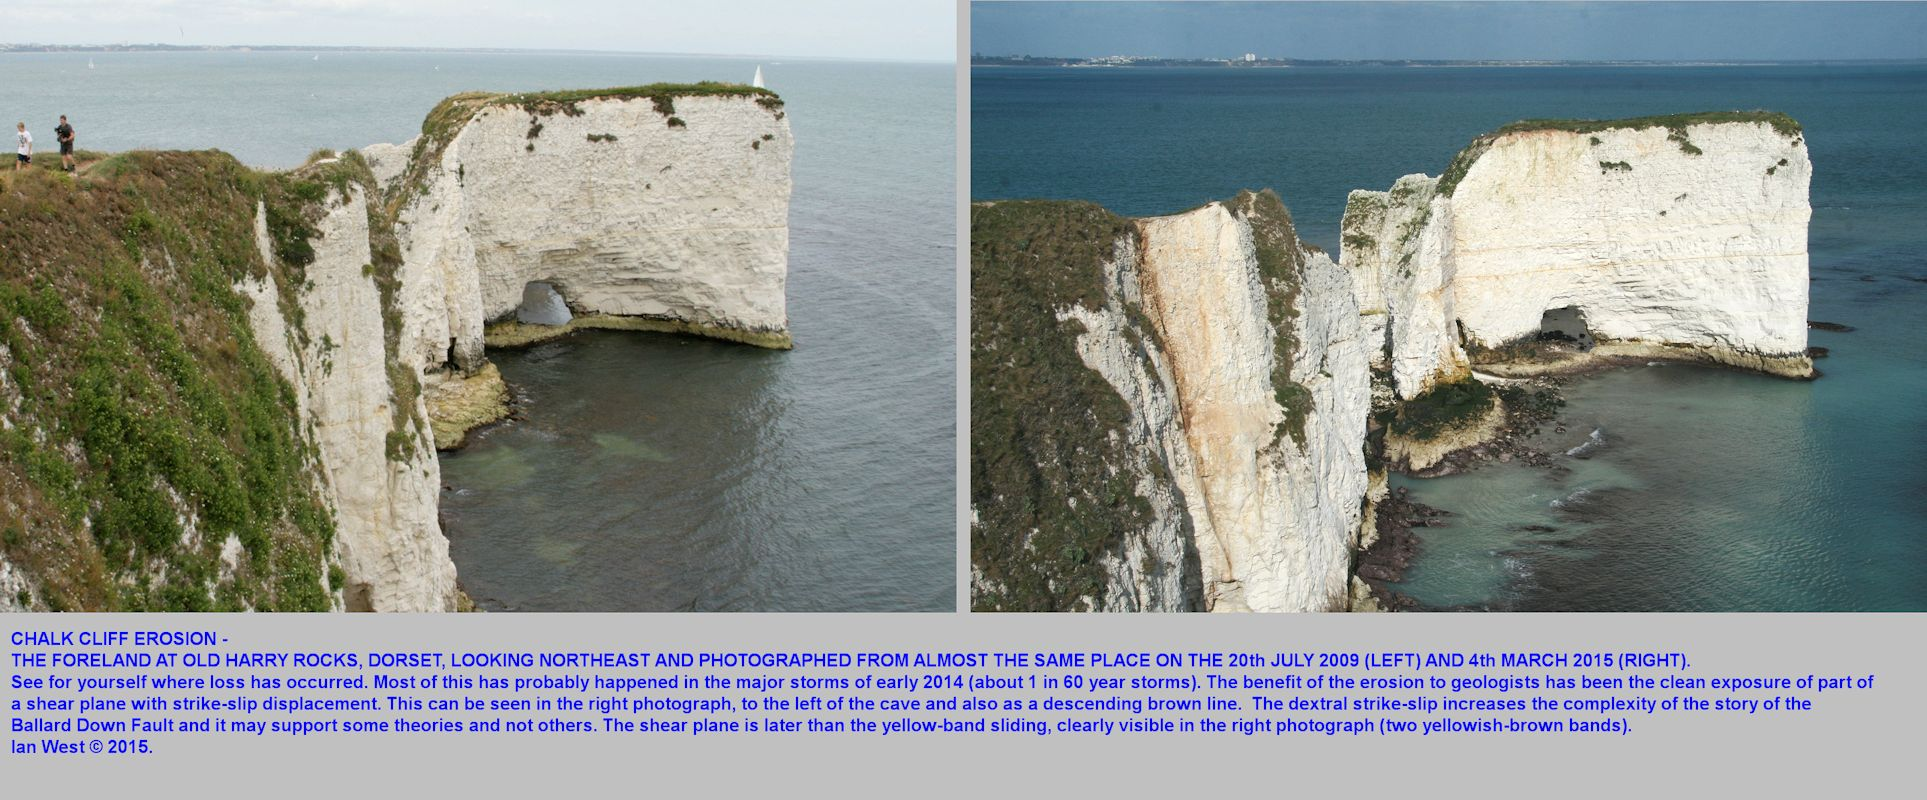 The comparative state of The Foreland at Old Harry Rocks, Studland, Dorset from 2009 to 2015, by Ian West